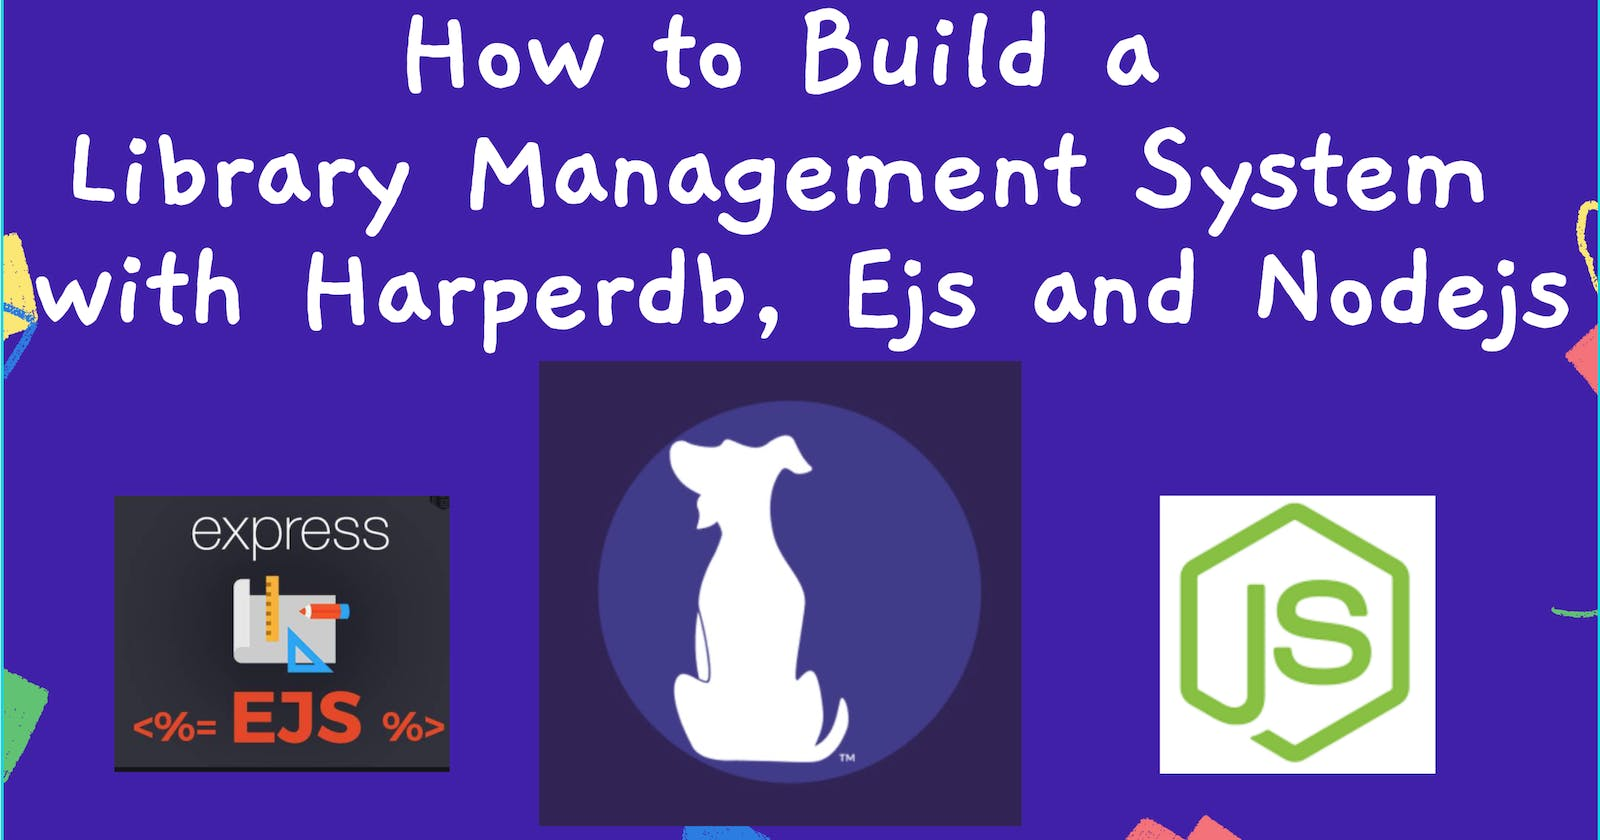 How to Build a Library Management System with Harperdb, Ejs and Nodejs